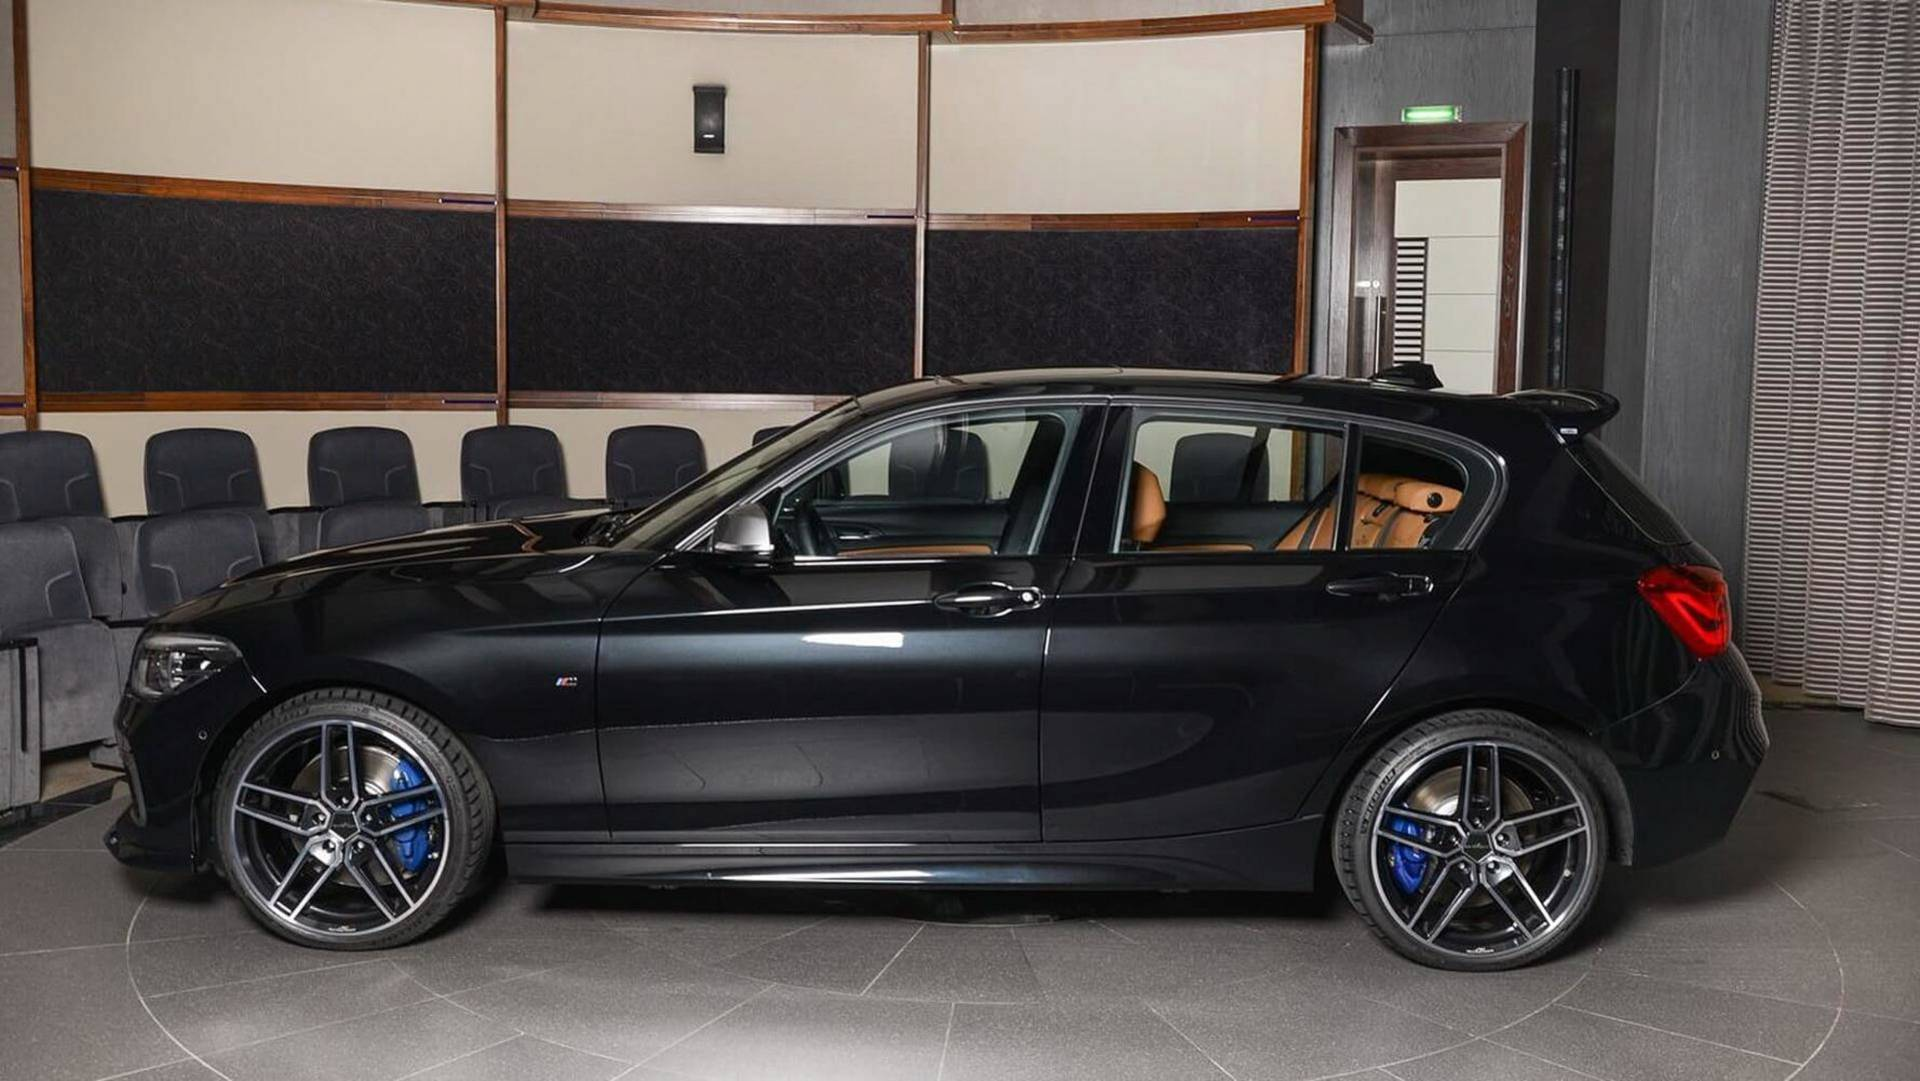 ac schnitzer tuned bmw m140i arrives in abu dhabi. Black Bedroom Furniture Sets. Home Design Ideas